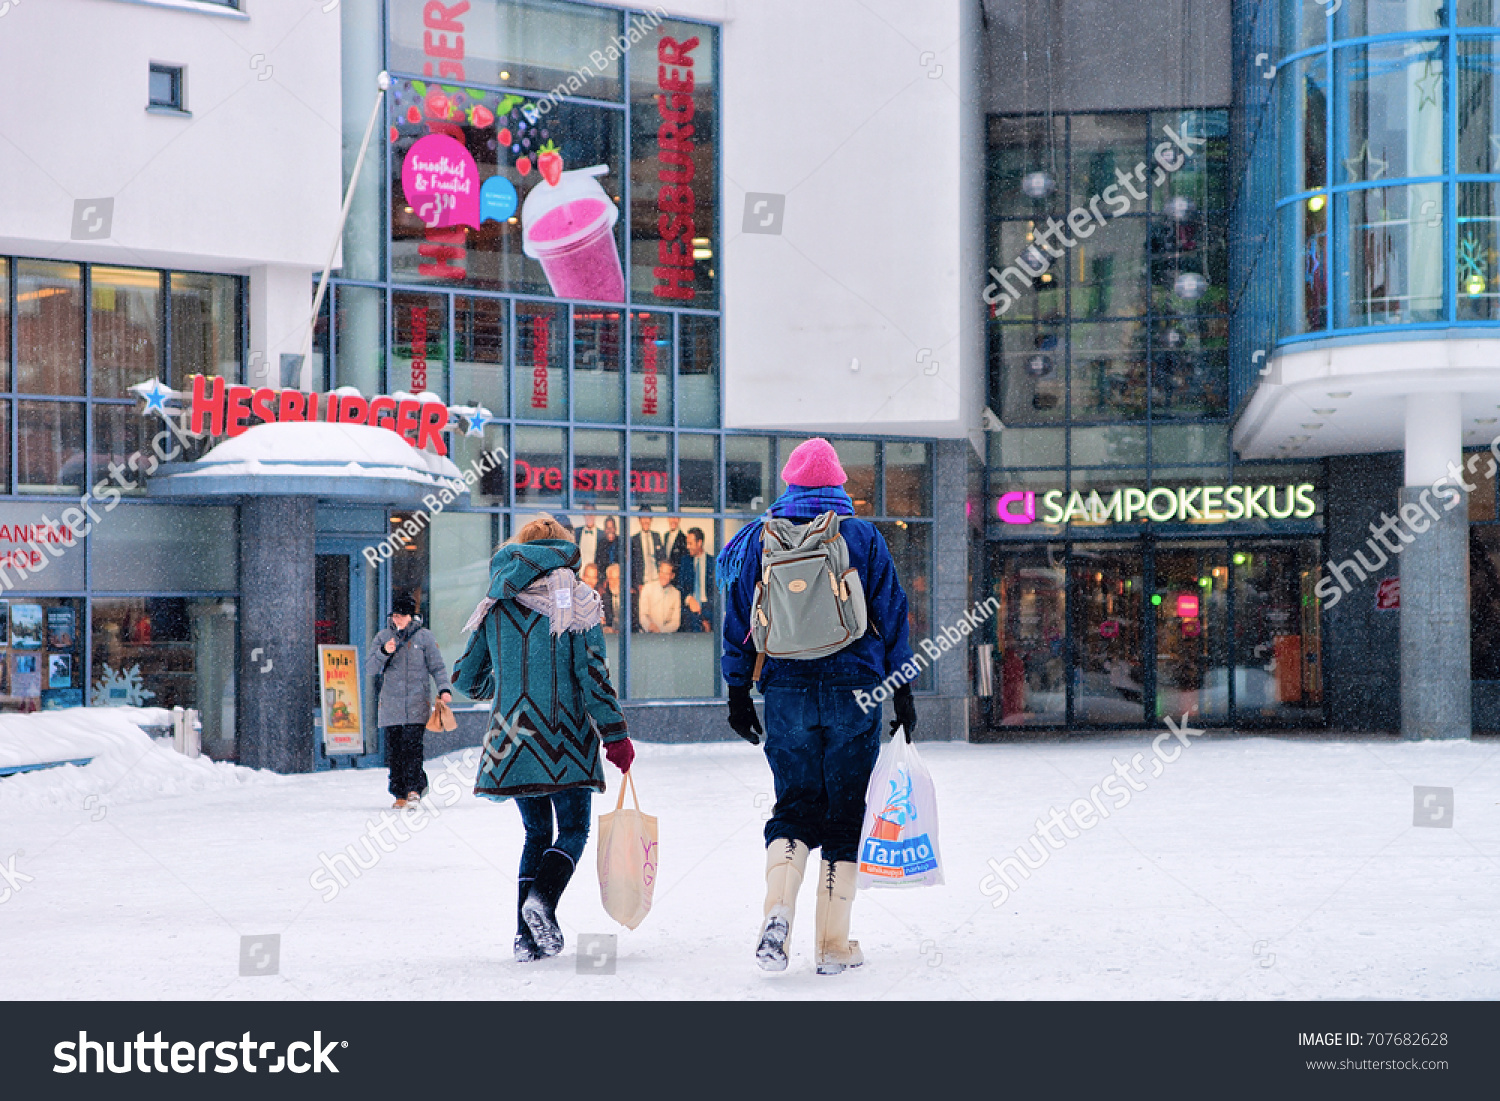 Rovaniemi Finland March 2 2017 People Stock Photo (Edit Now ... 0a4371fd3f5